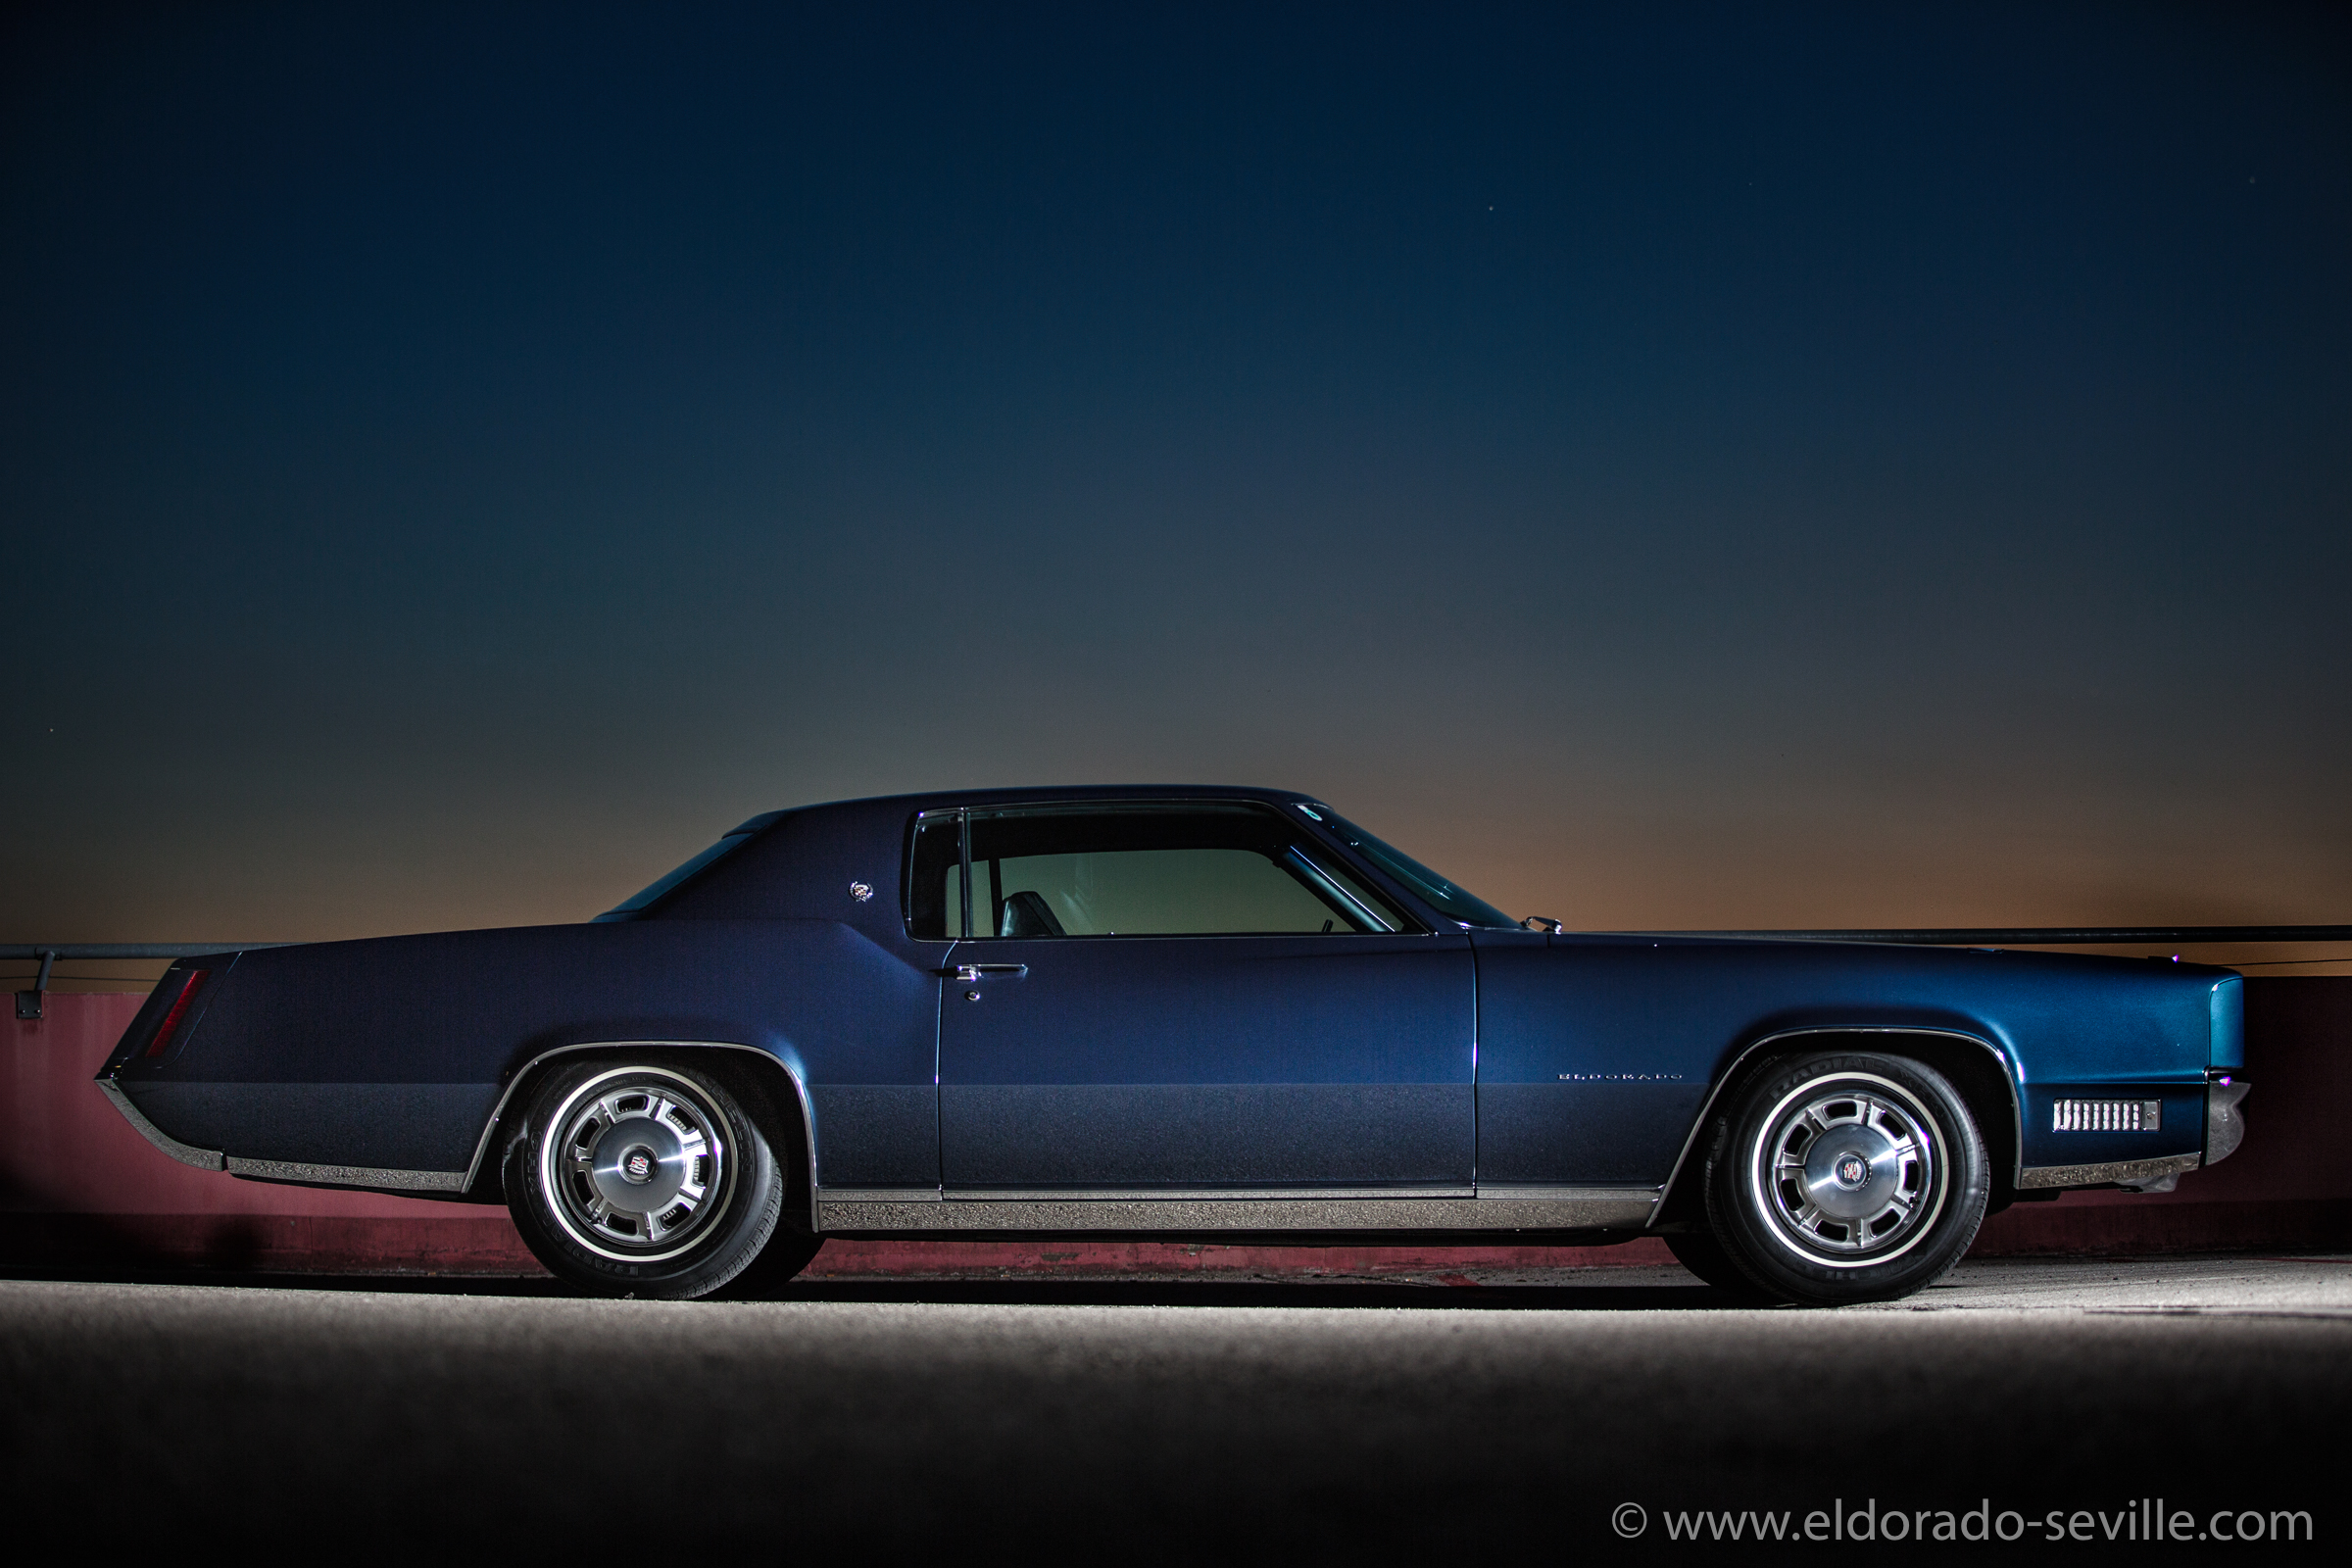 This page features pictures of my 1967 Cadillac Eldorado. Most of them were taken by my wife Afra.